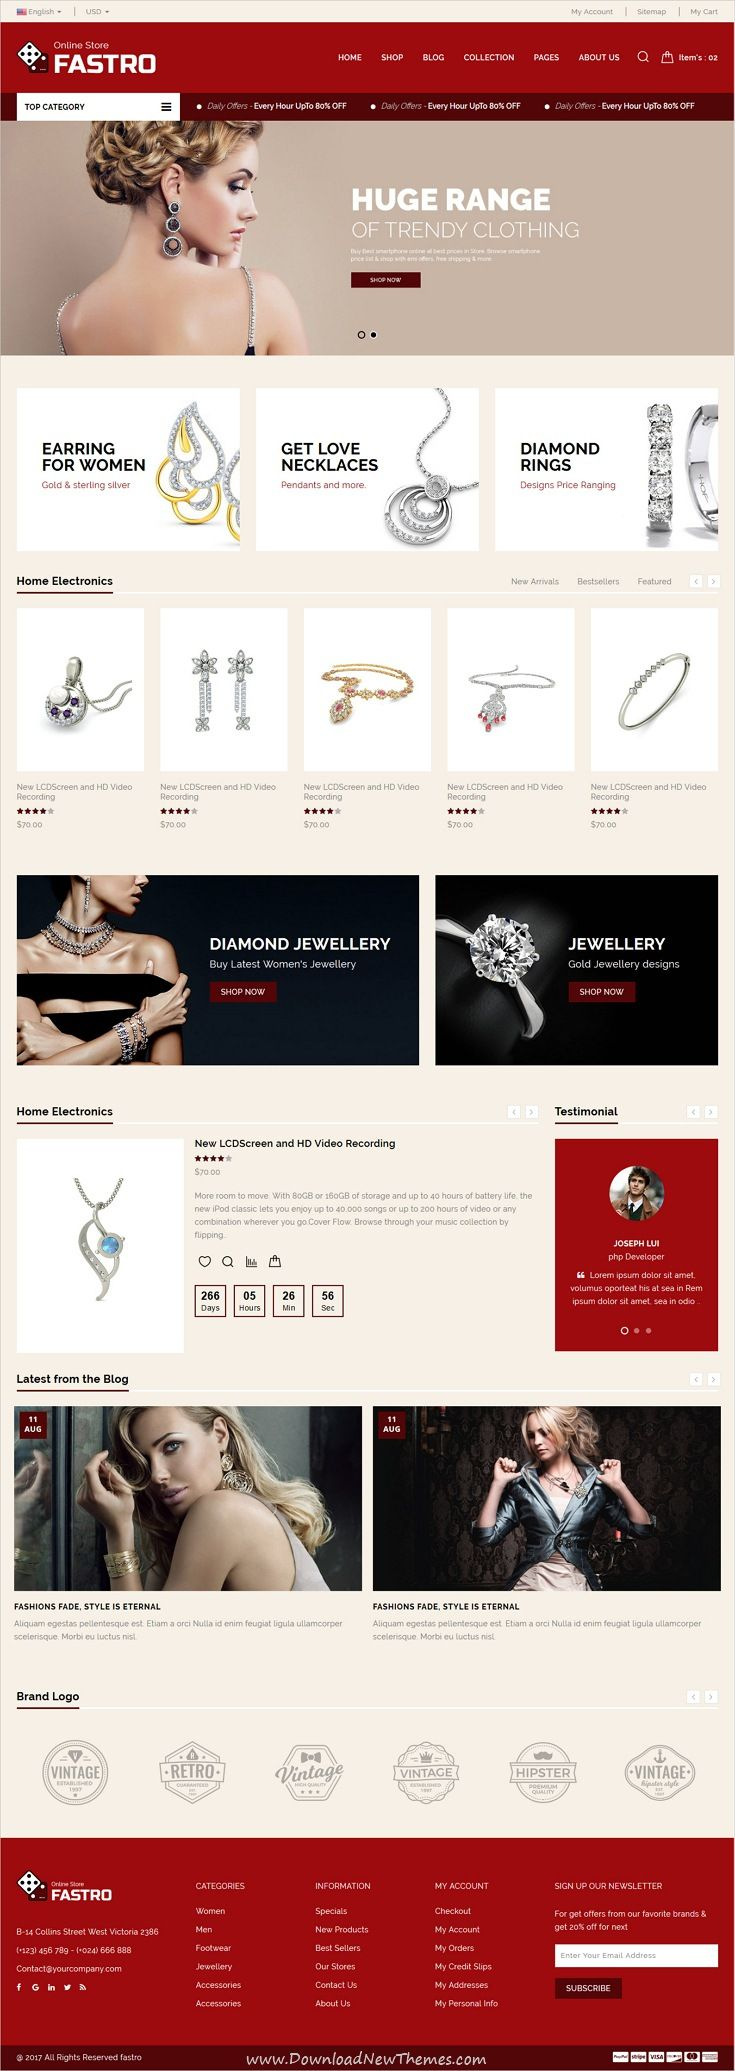 Fastro is clean and modern design responsive #HTML5 template for #Jewellery shop #eCommerce website with 6 niche homepage layouts download now..